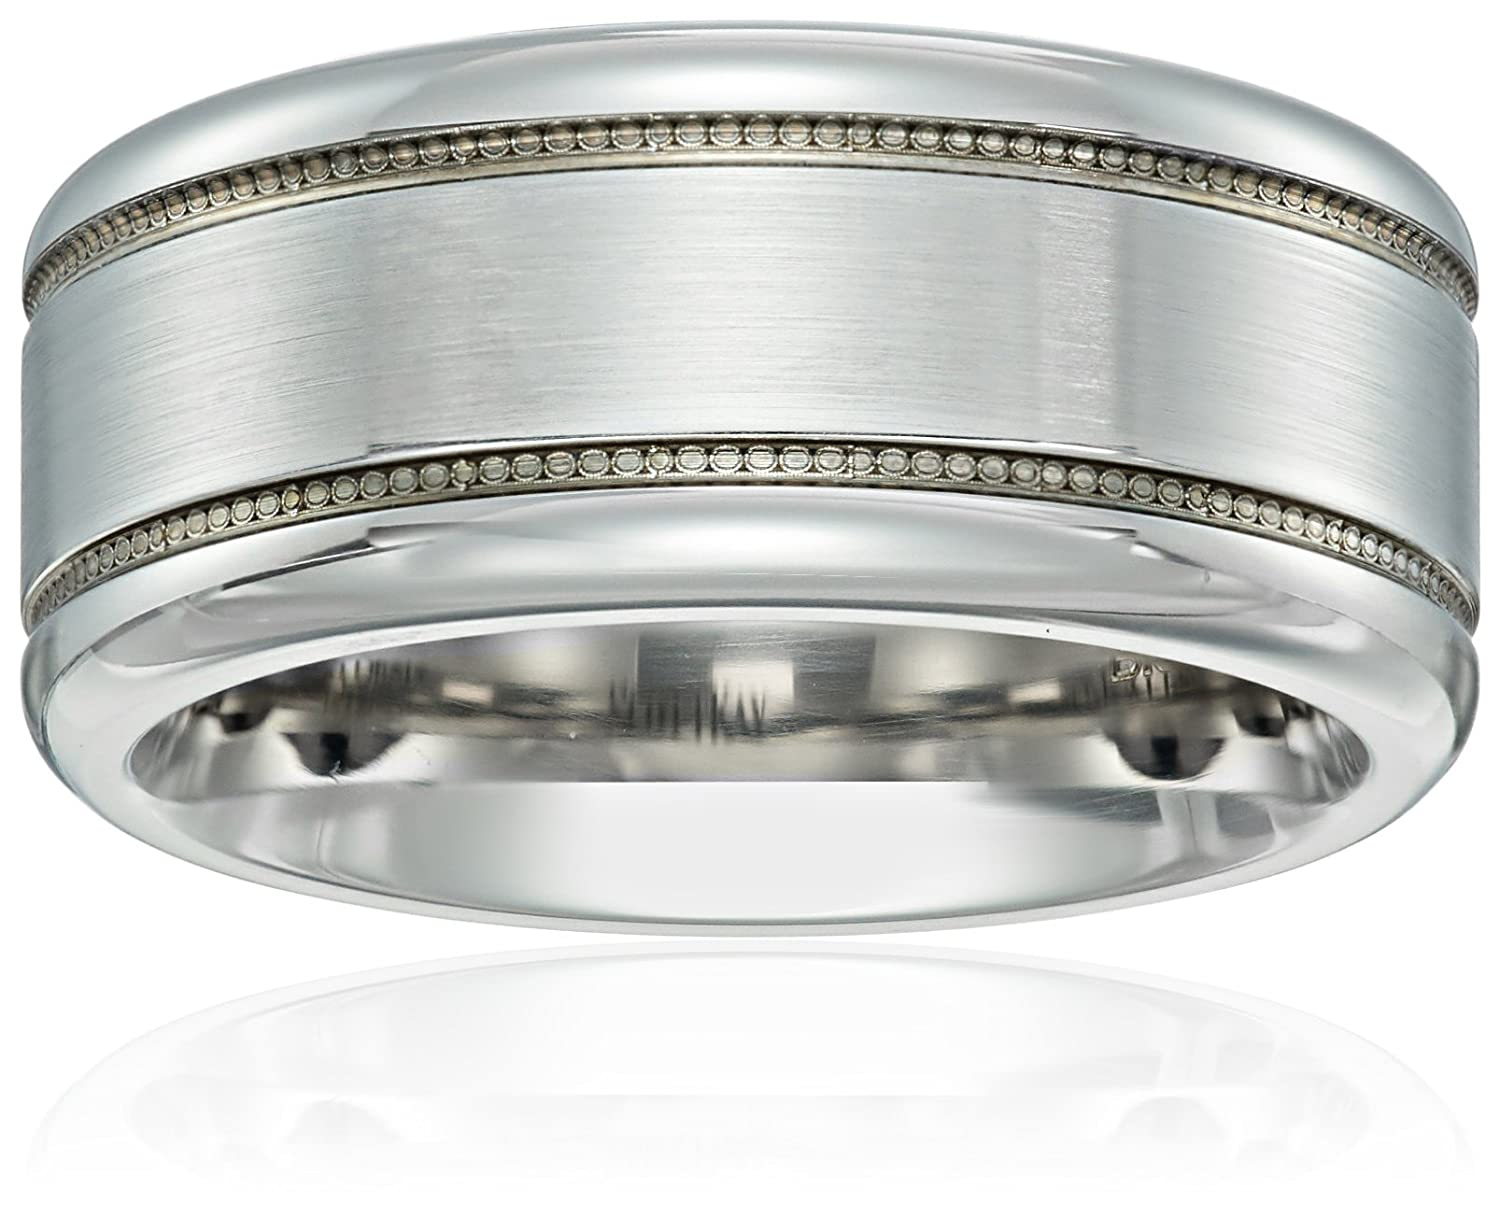 Men's Scott Kay Cobalt Prime Band With Satin Finish And Lasered Millgrain Wedding Bands Amazon: Scott Kay Prime Cobalt Wedding Band At Websimilar.org